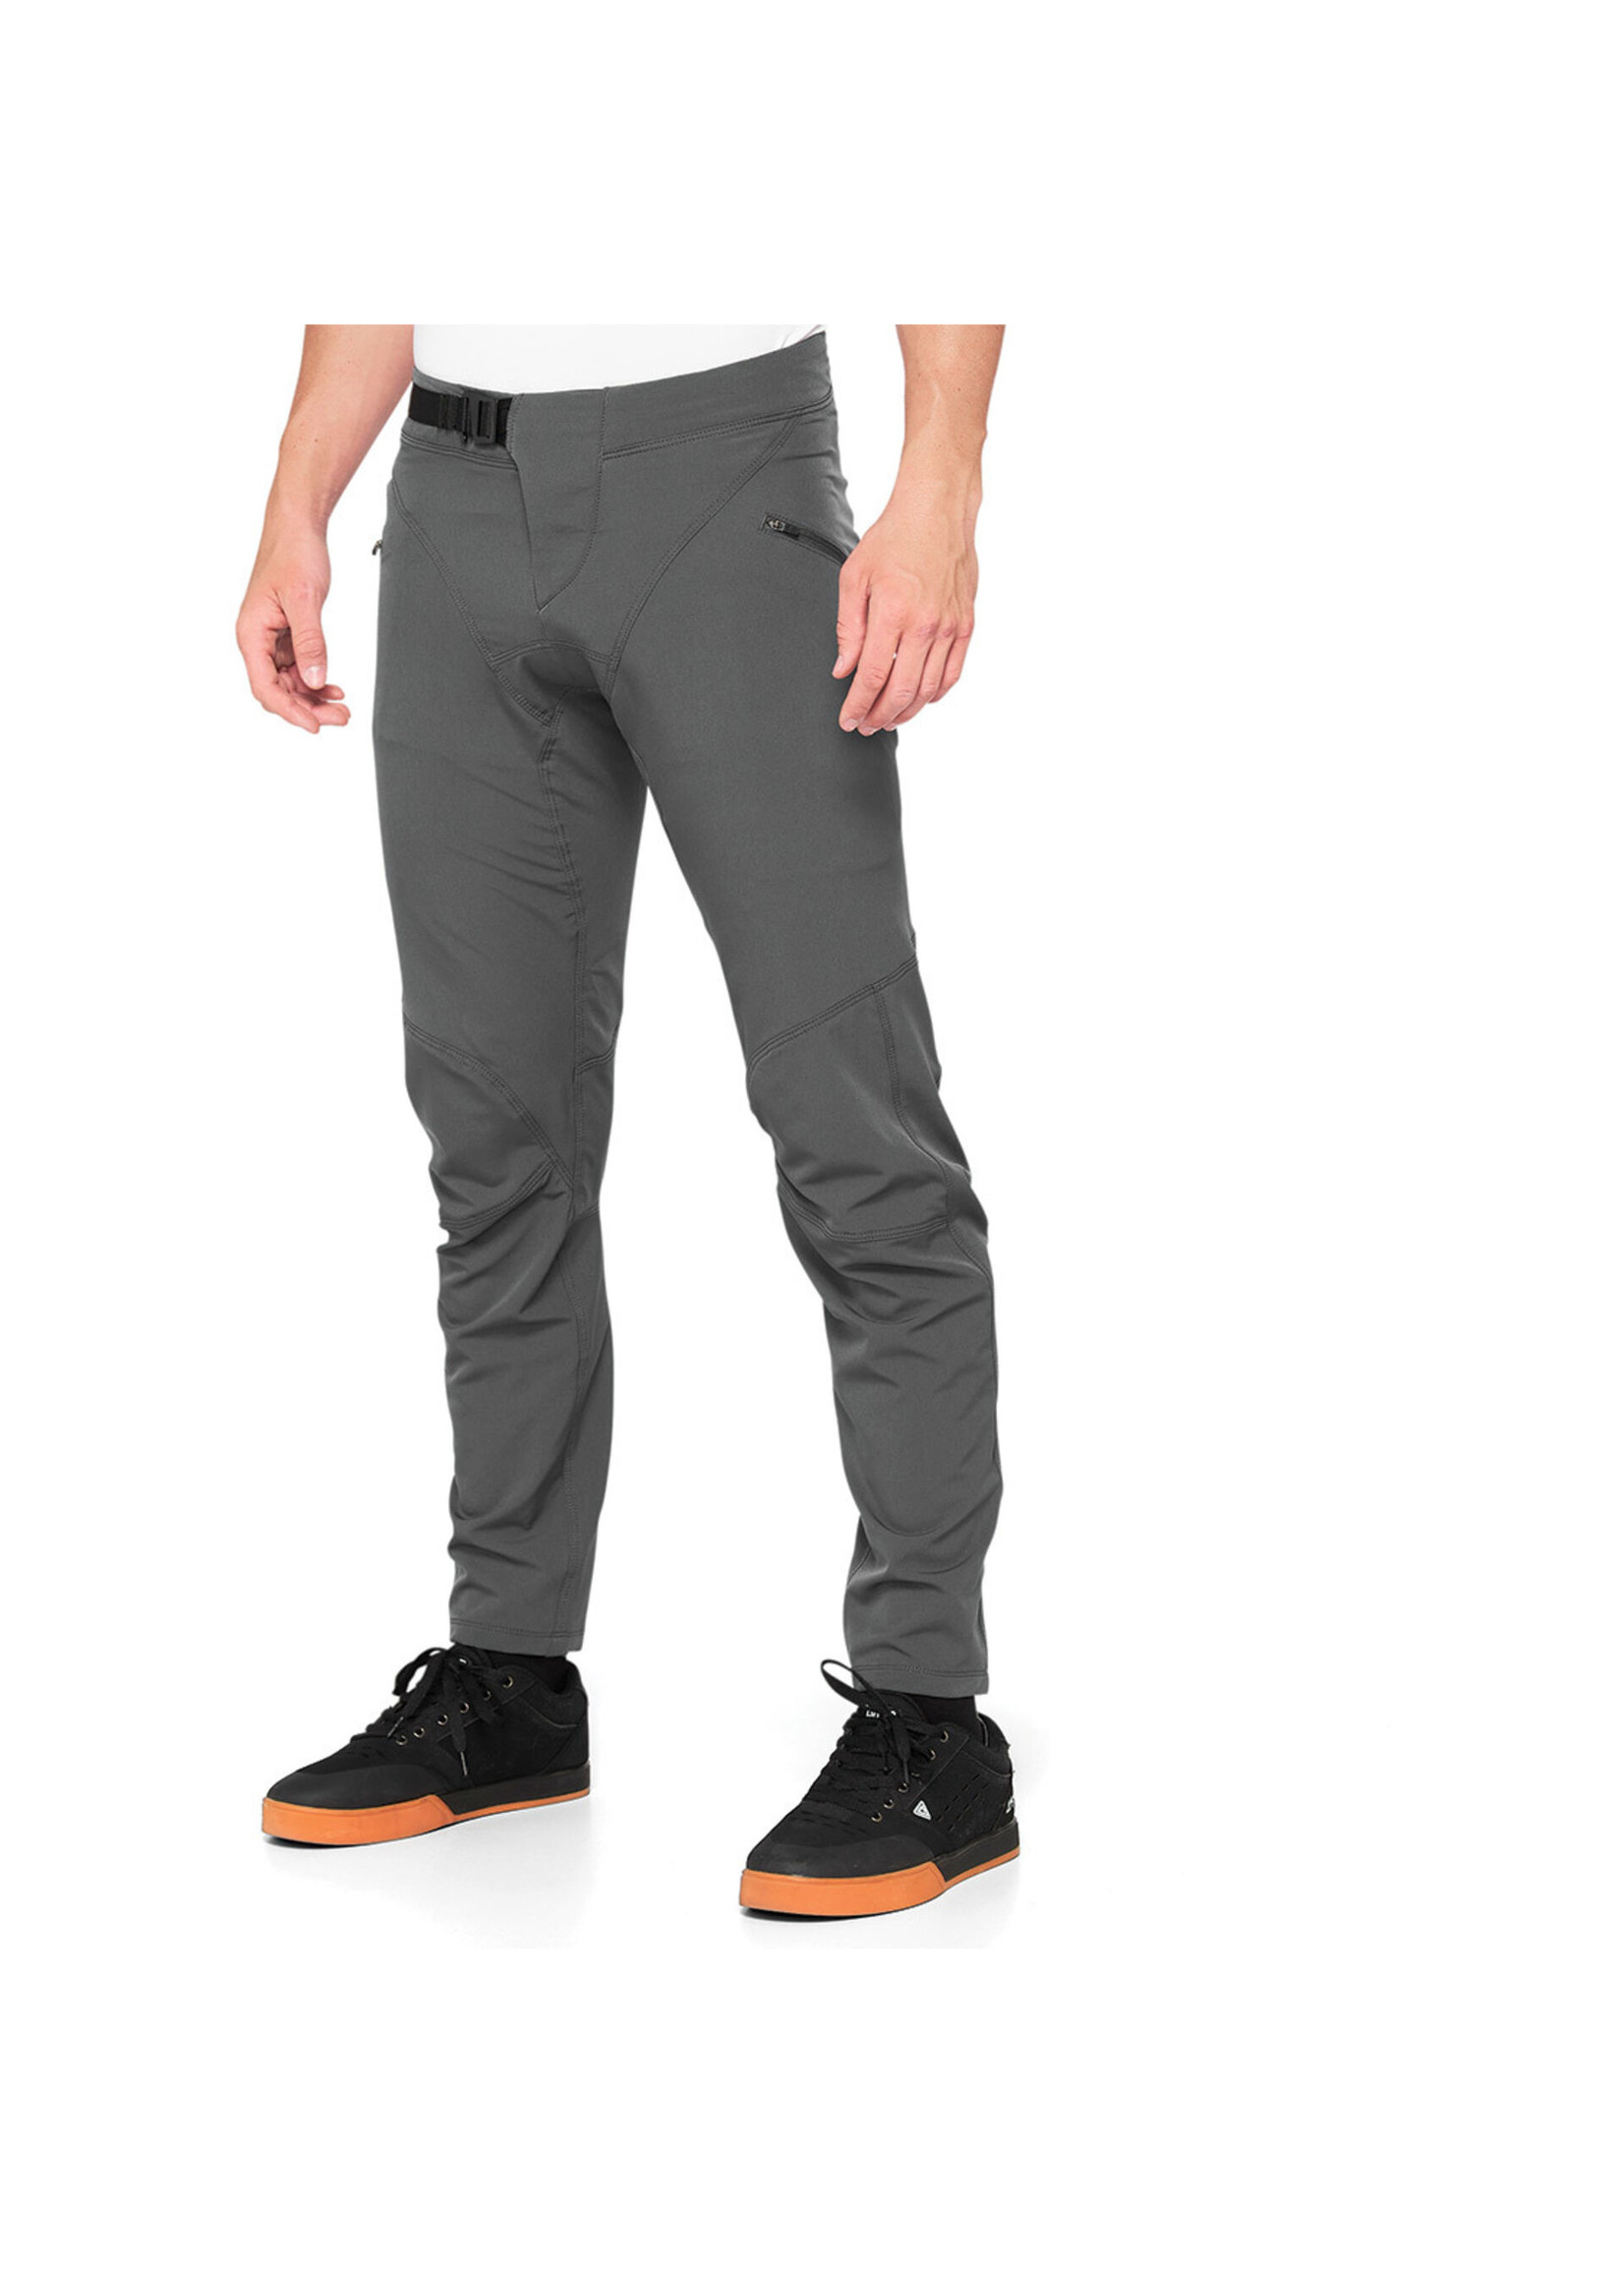 100% 100% AirMatic Pants